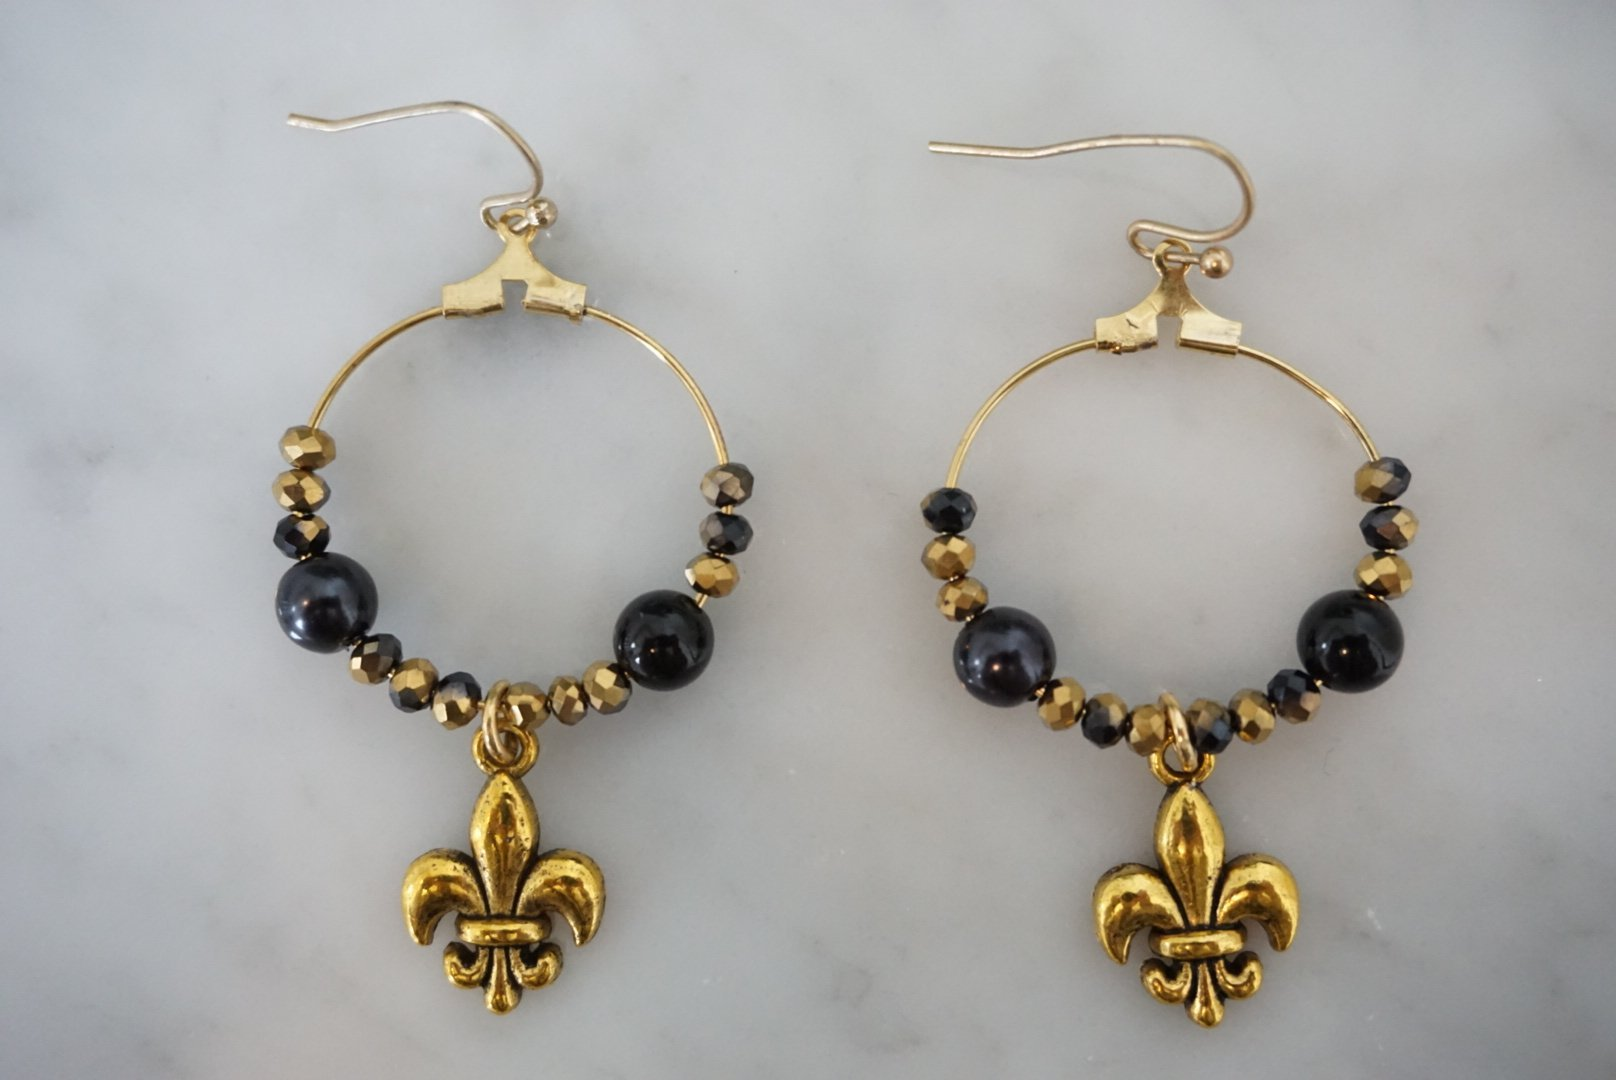 LA2LA Handmade Black And Gold Fleur De Lis Hoop Earrings